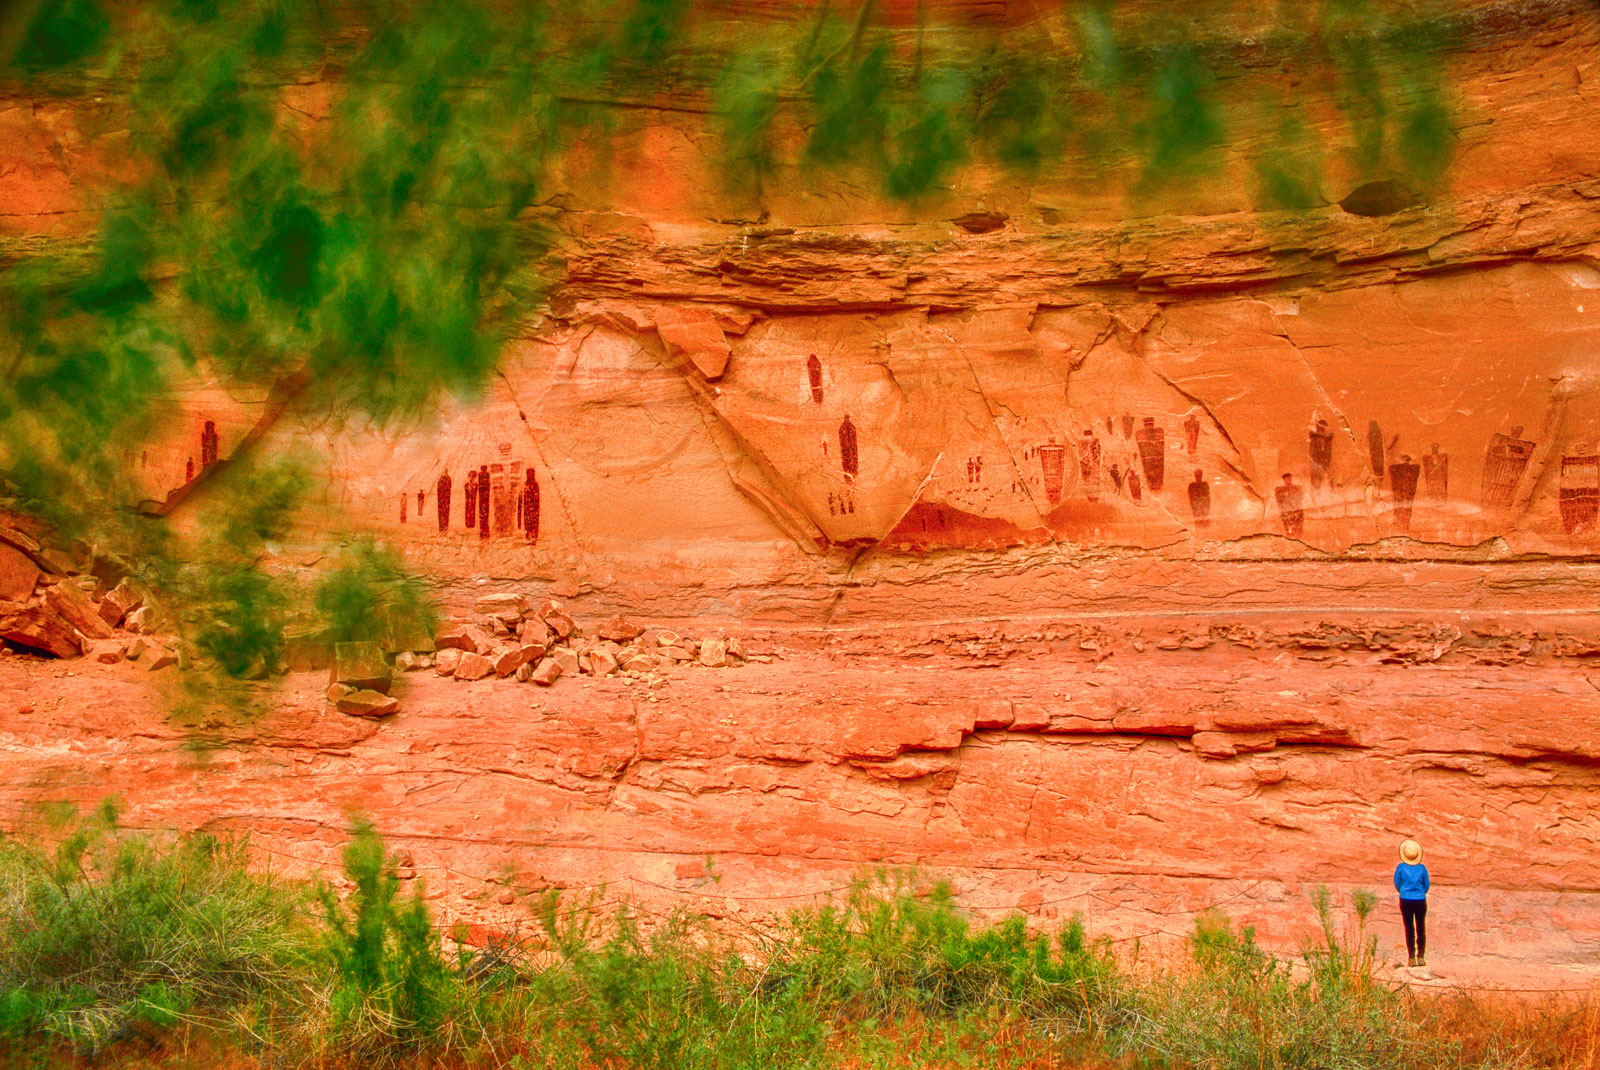 Visitor looking at rock art, Horseshoe Canyon, Canyonlands National Park, Utah, USA